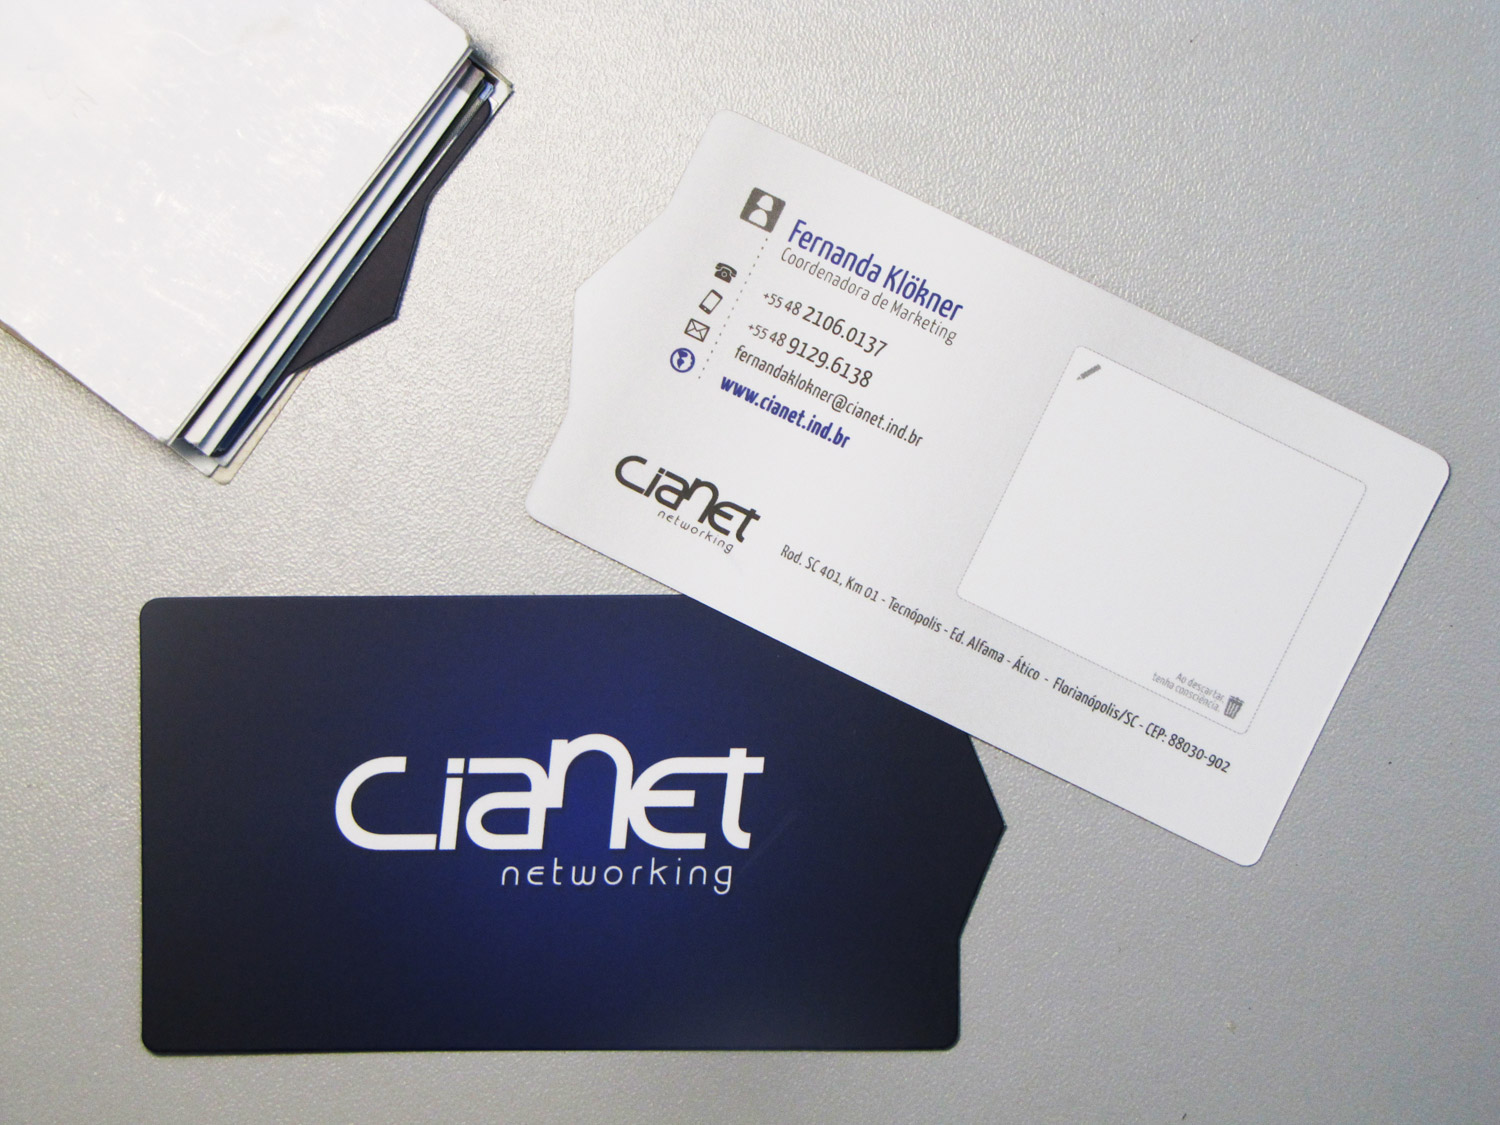 New Cianet Business Card by JohwMatos